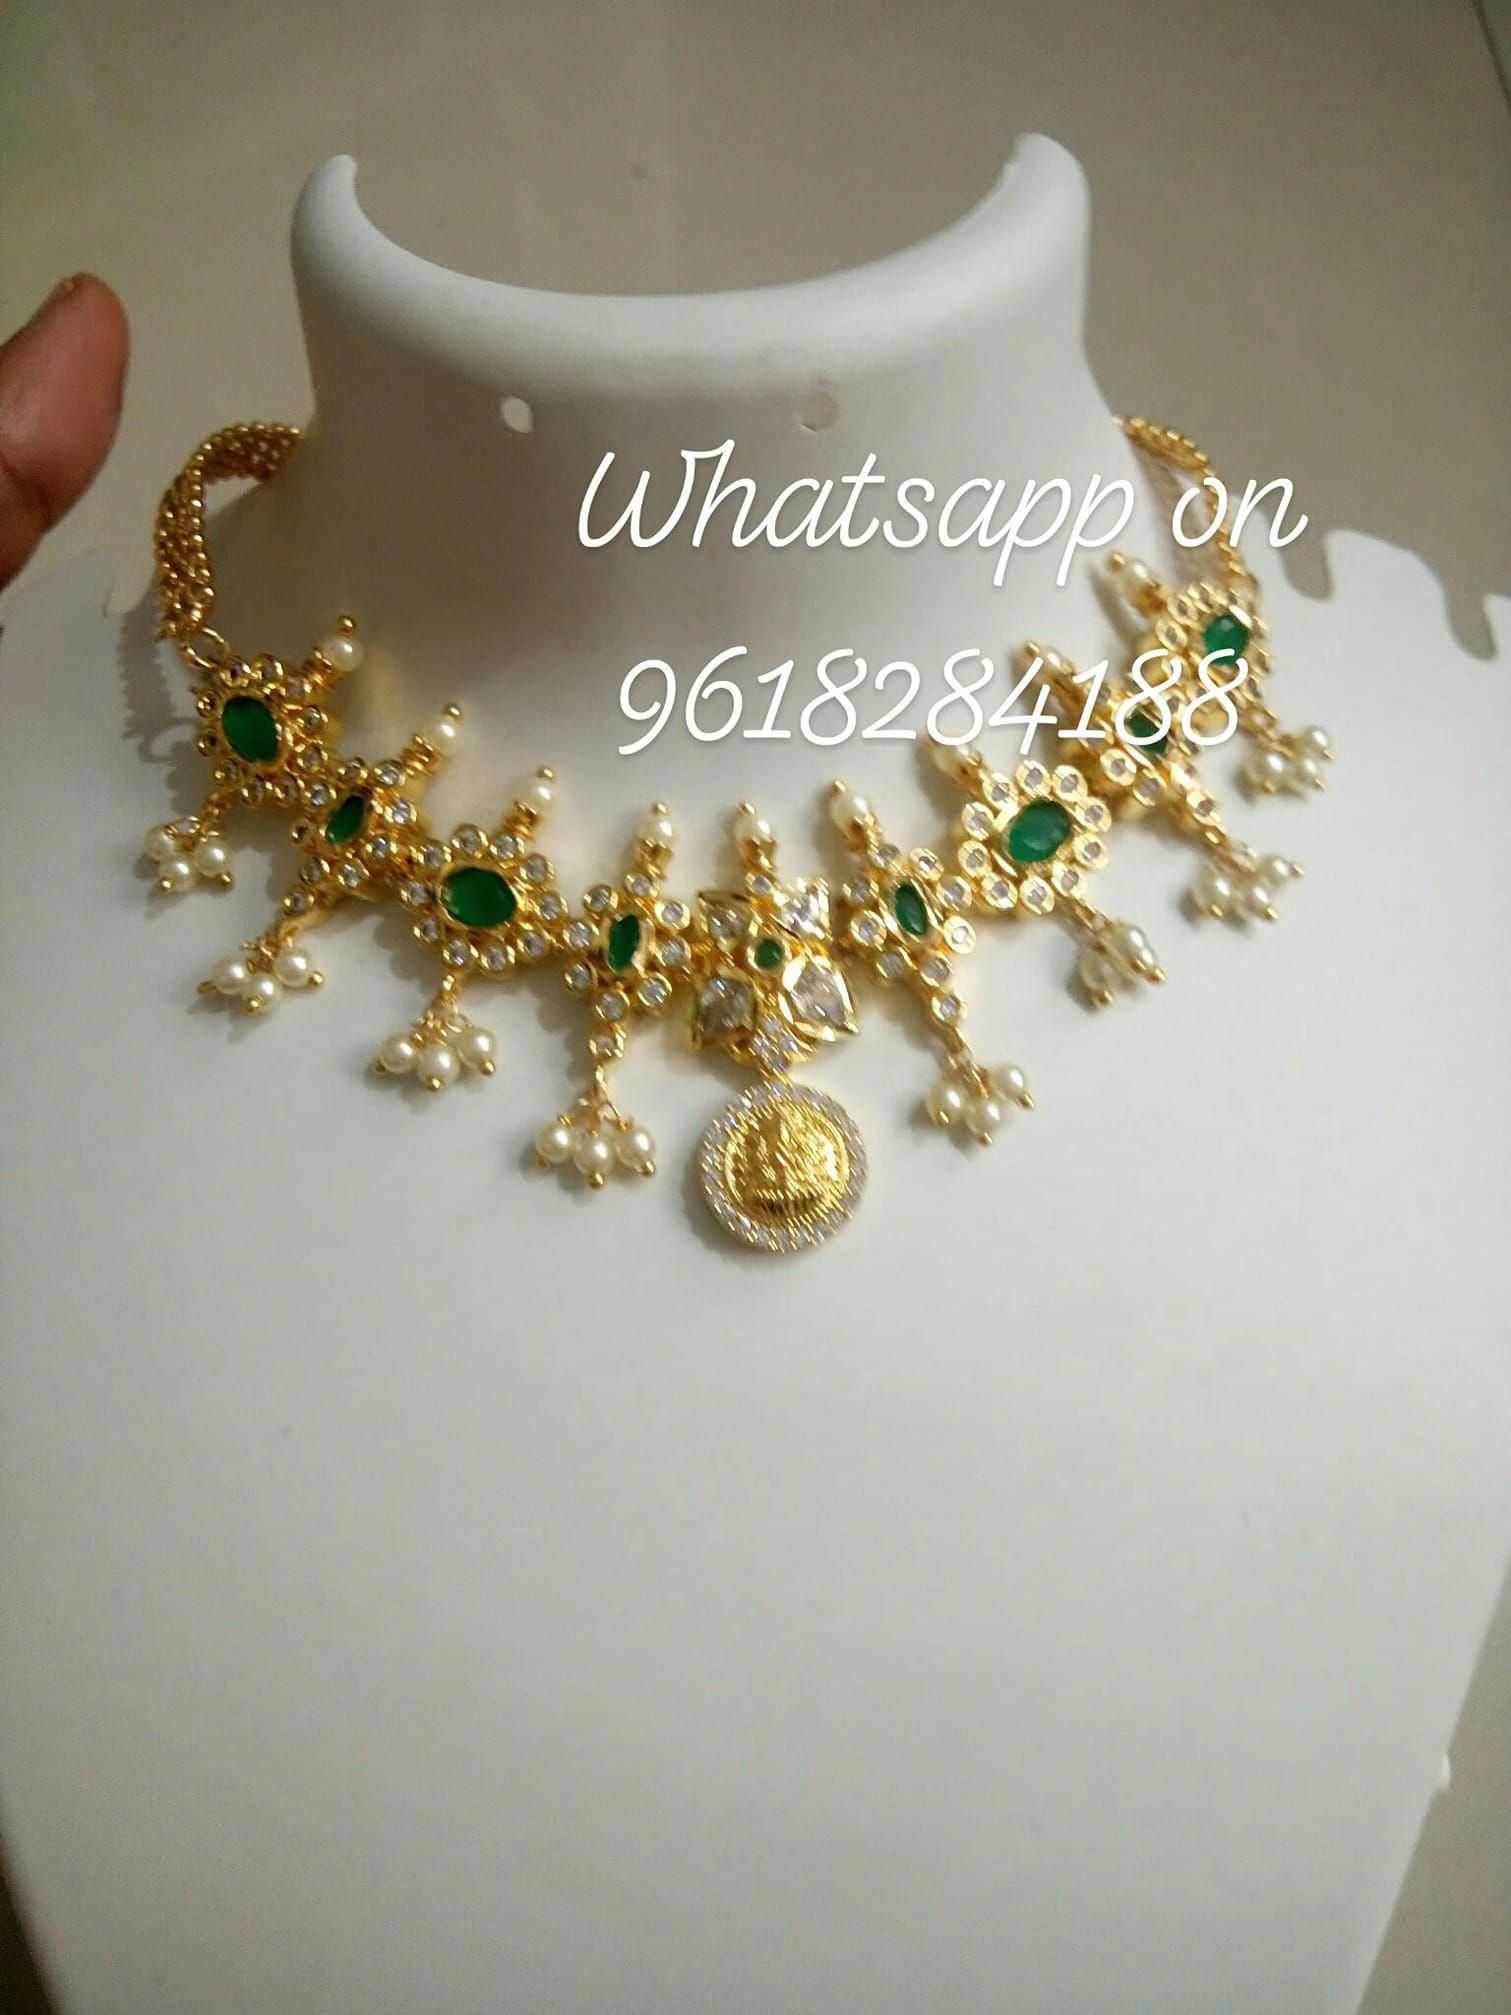 1 gram gold jewellery wholesale. Contact   9618284188.  realgoldjewellery   goldjewellery 4f1ab3bc3e